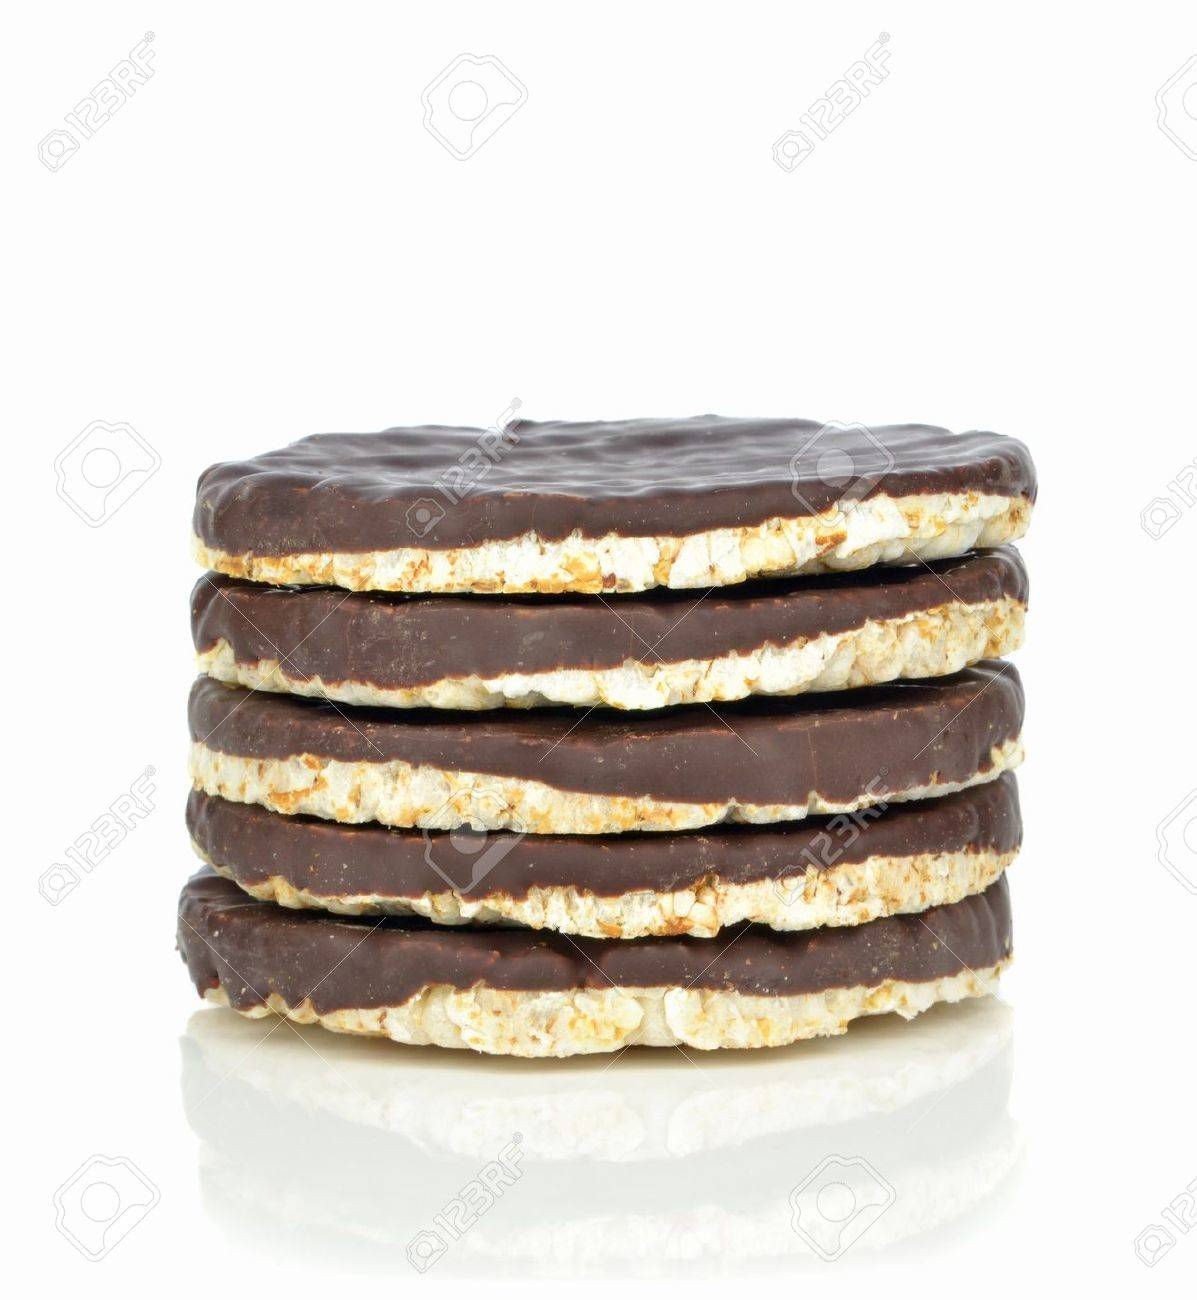 A stack of chocolate coated rice cakes on white background